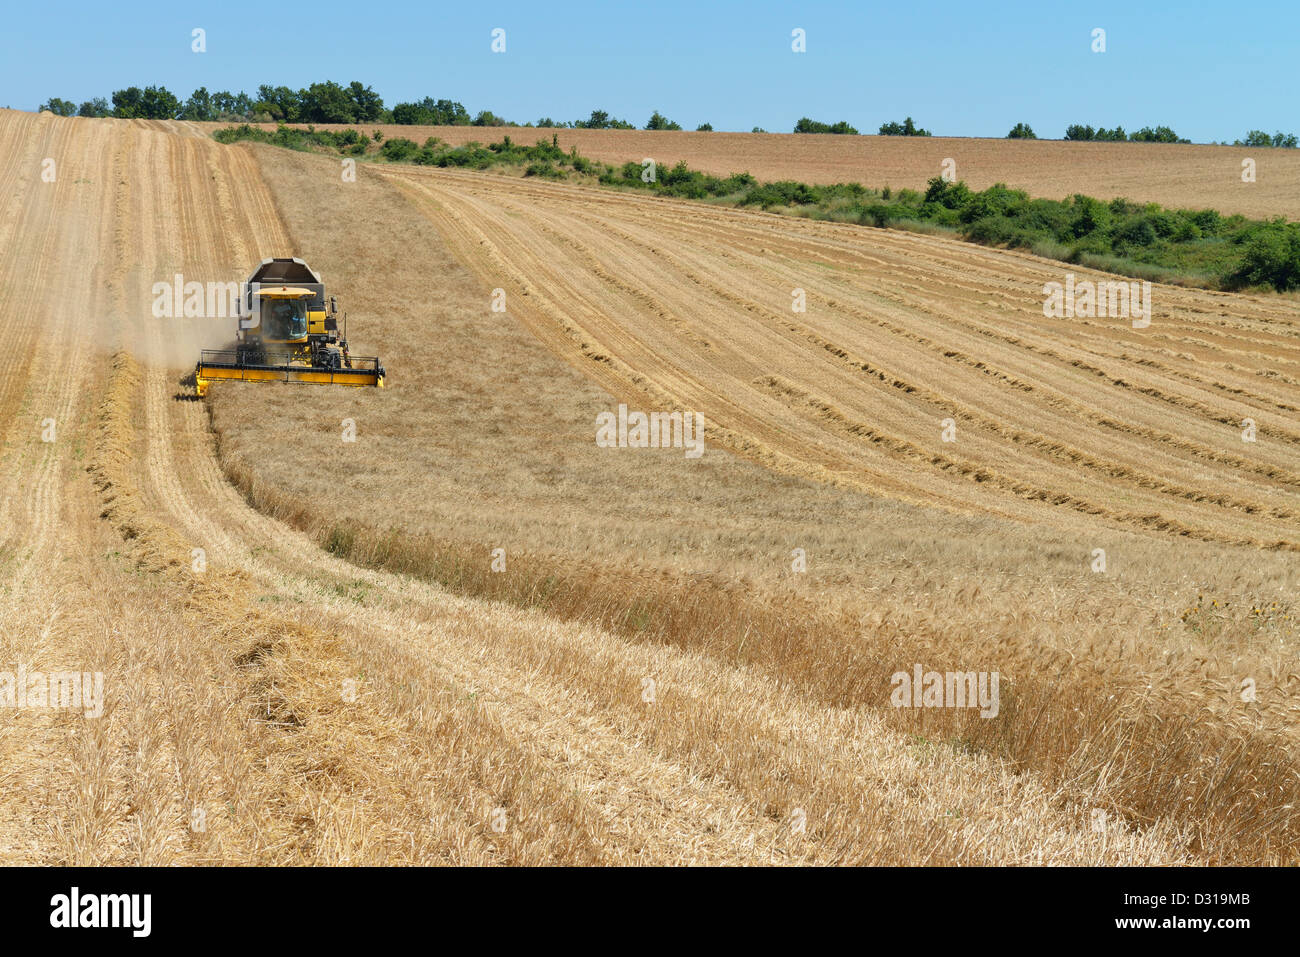 Combine harvester in wheat field in summer, Valensole, Provence, France - Stock Image